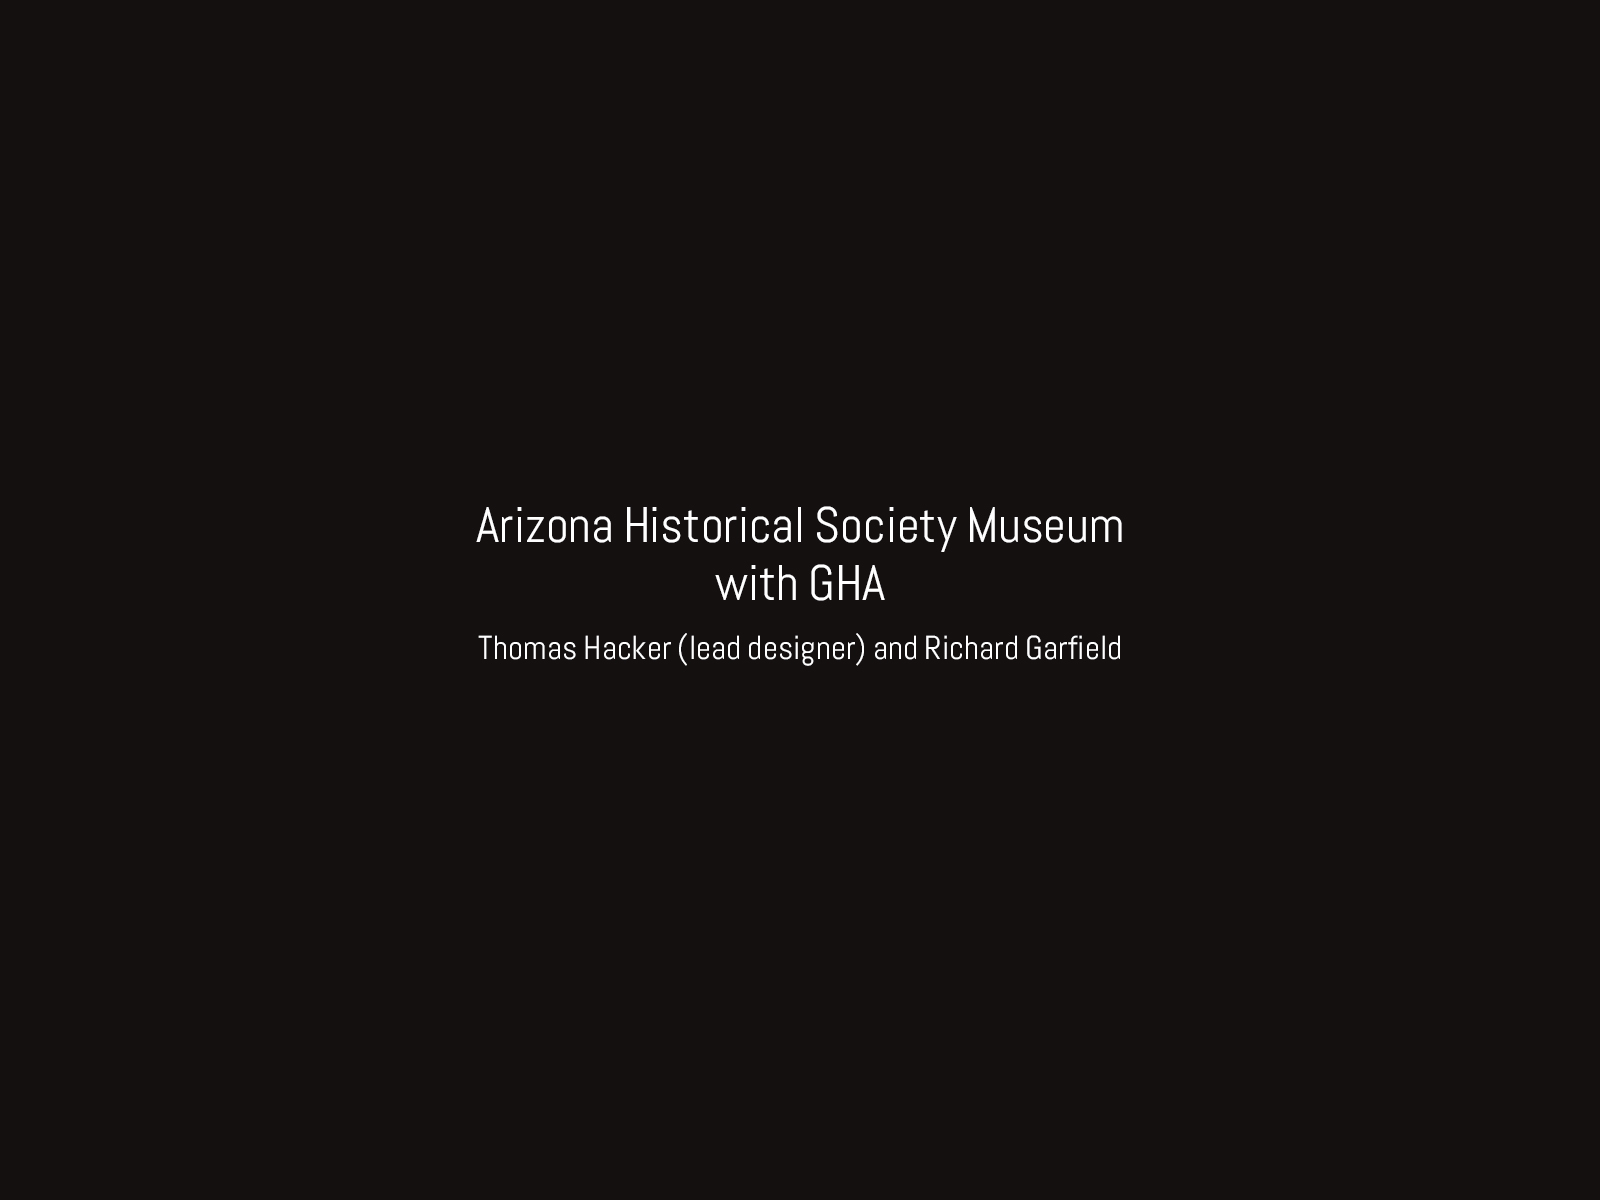 Arizona Historical Society Museum.jpg